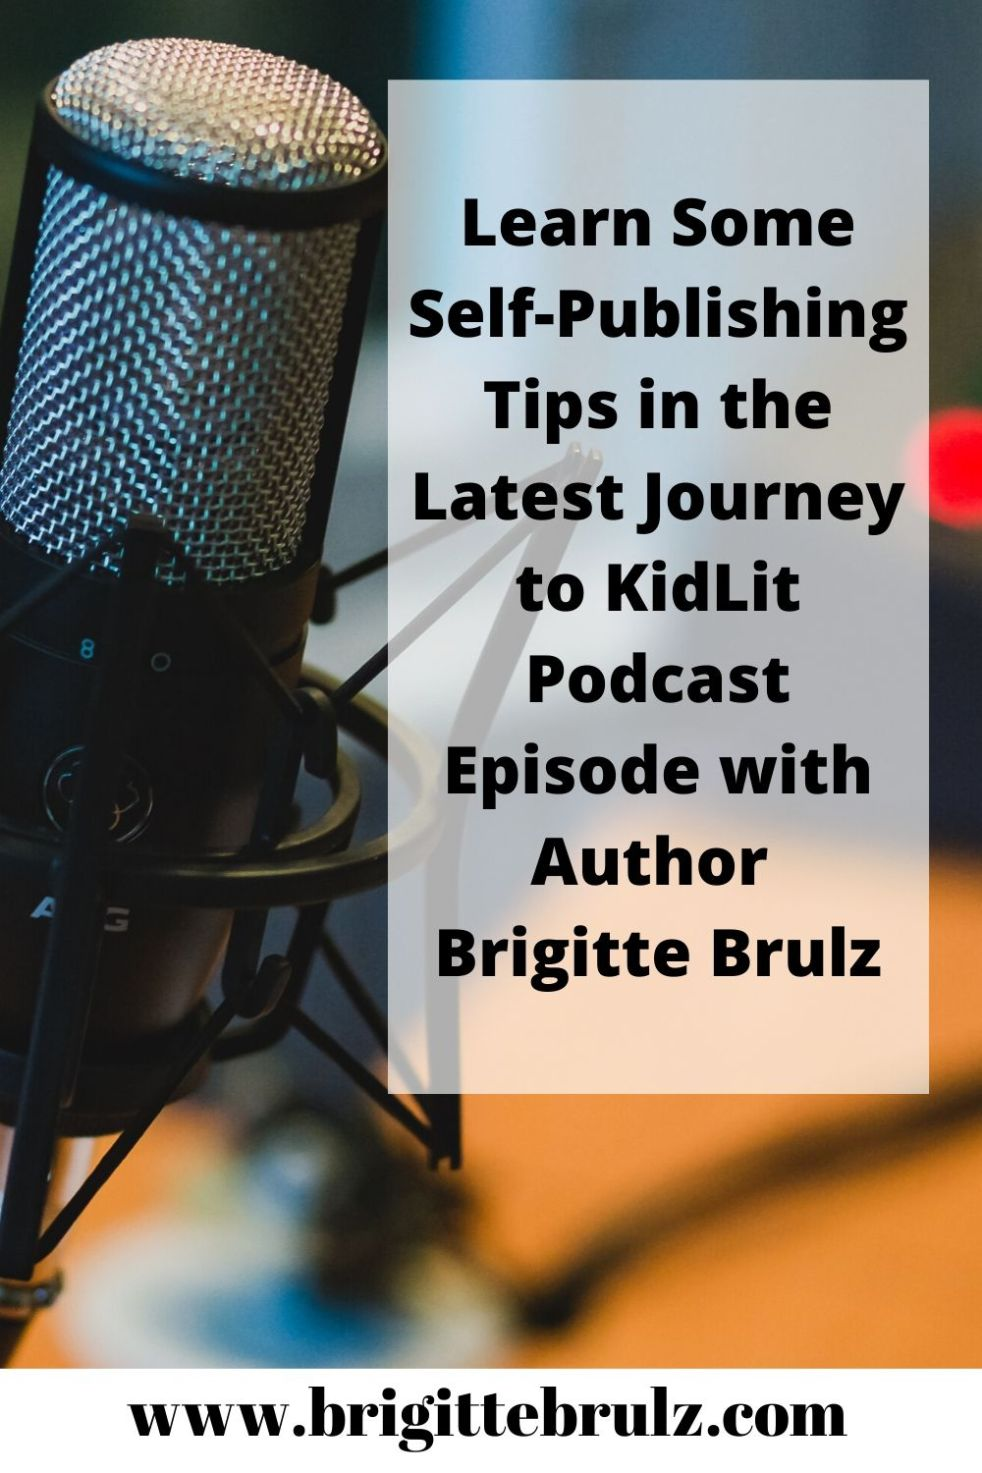 Journey to Kidlit Podcast Episode with Author Brigitte Brulz